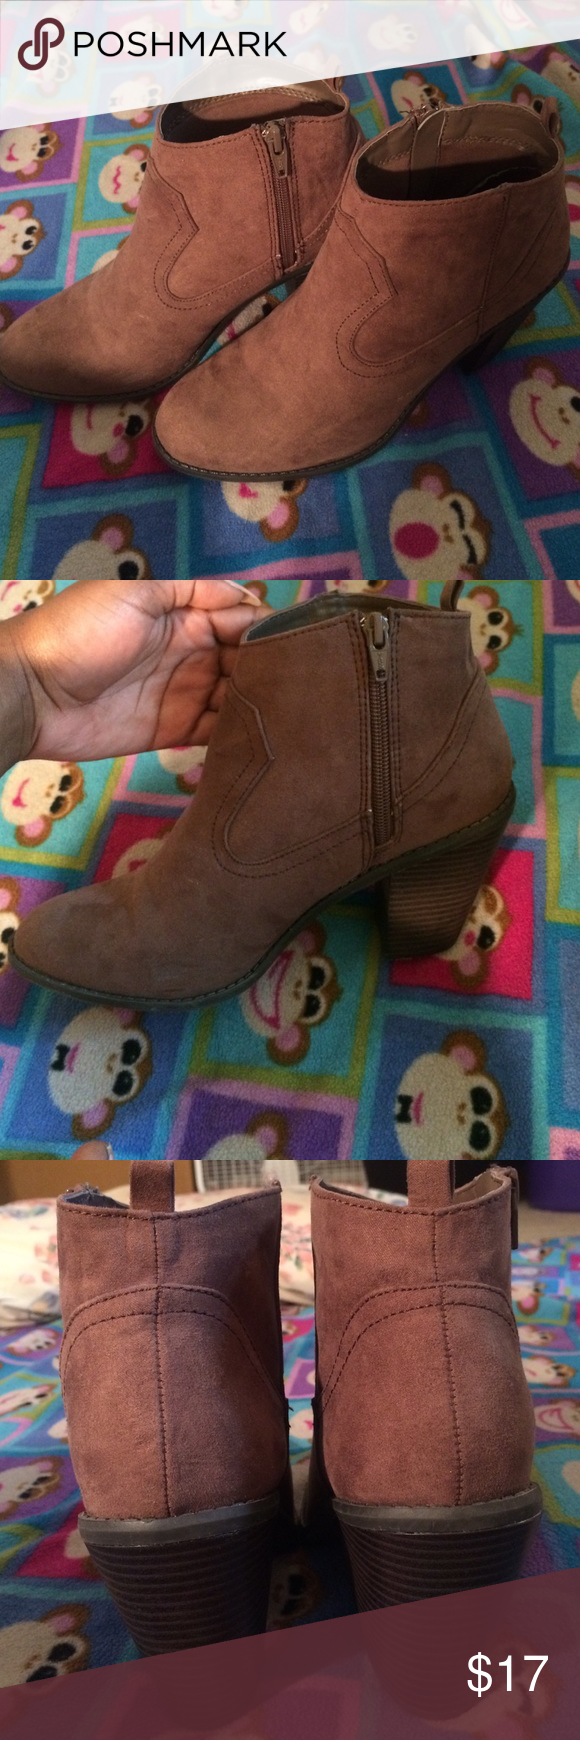 Cato Ankle boots Very clean these booties can be dressed up or dressed down. They've only been worn twice they are good as new. Cato Shoes Ankle Boots & Booties